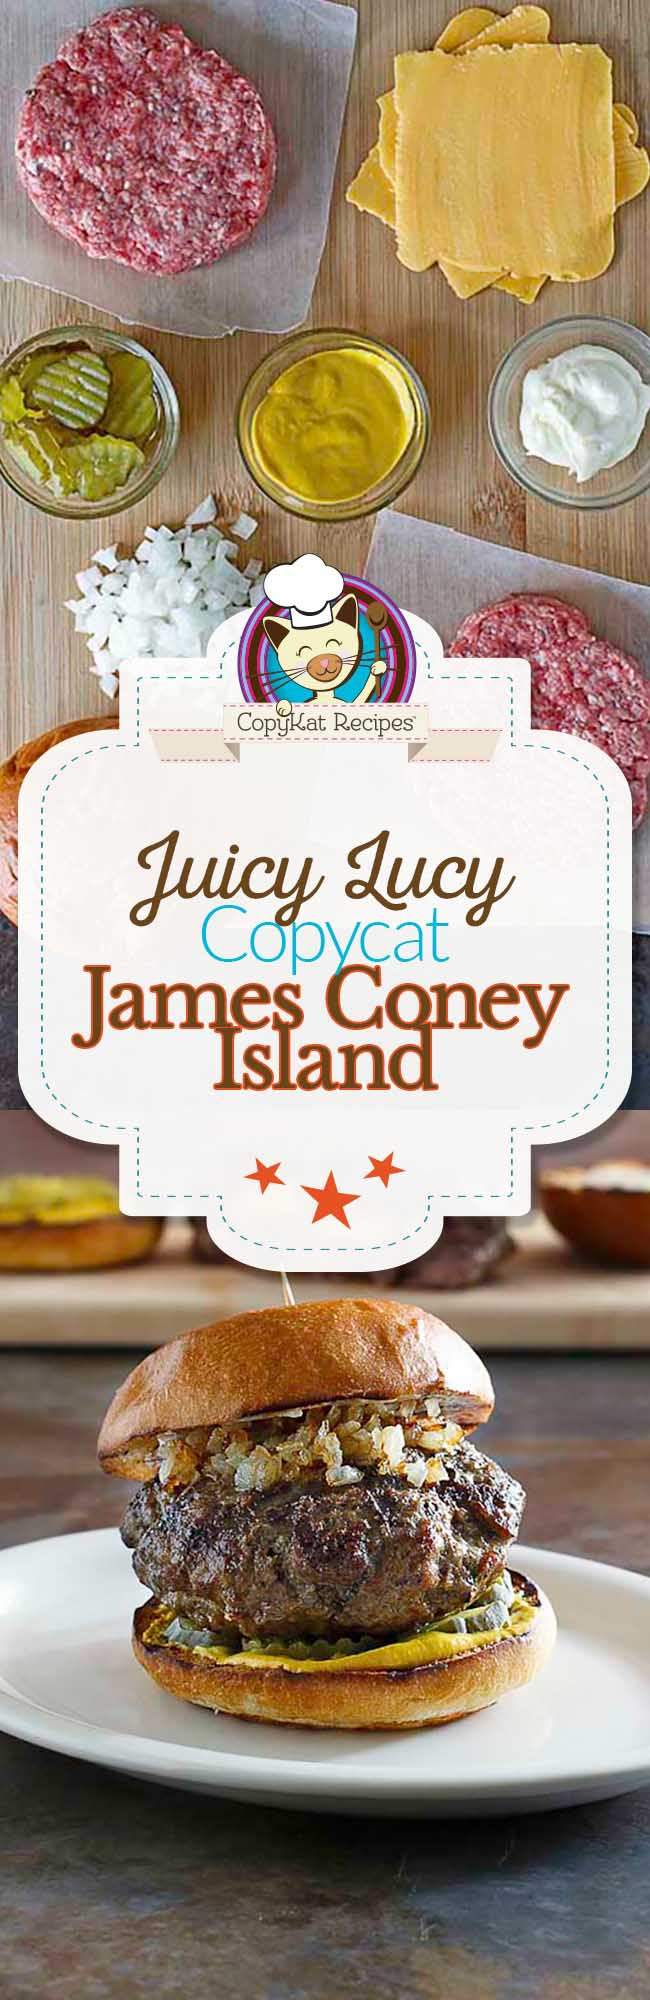 You can recreate the Juicy Lucy from James Coney Island.  Make this copycat recipe at home.